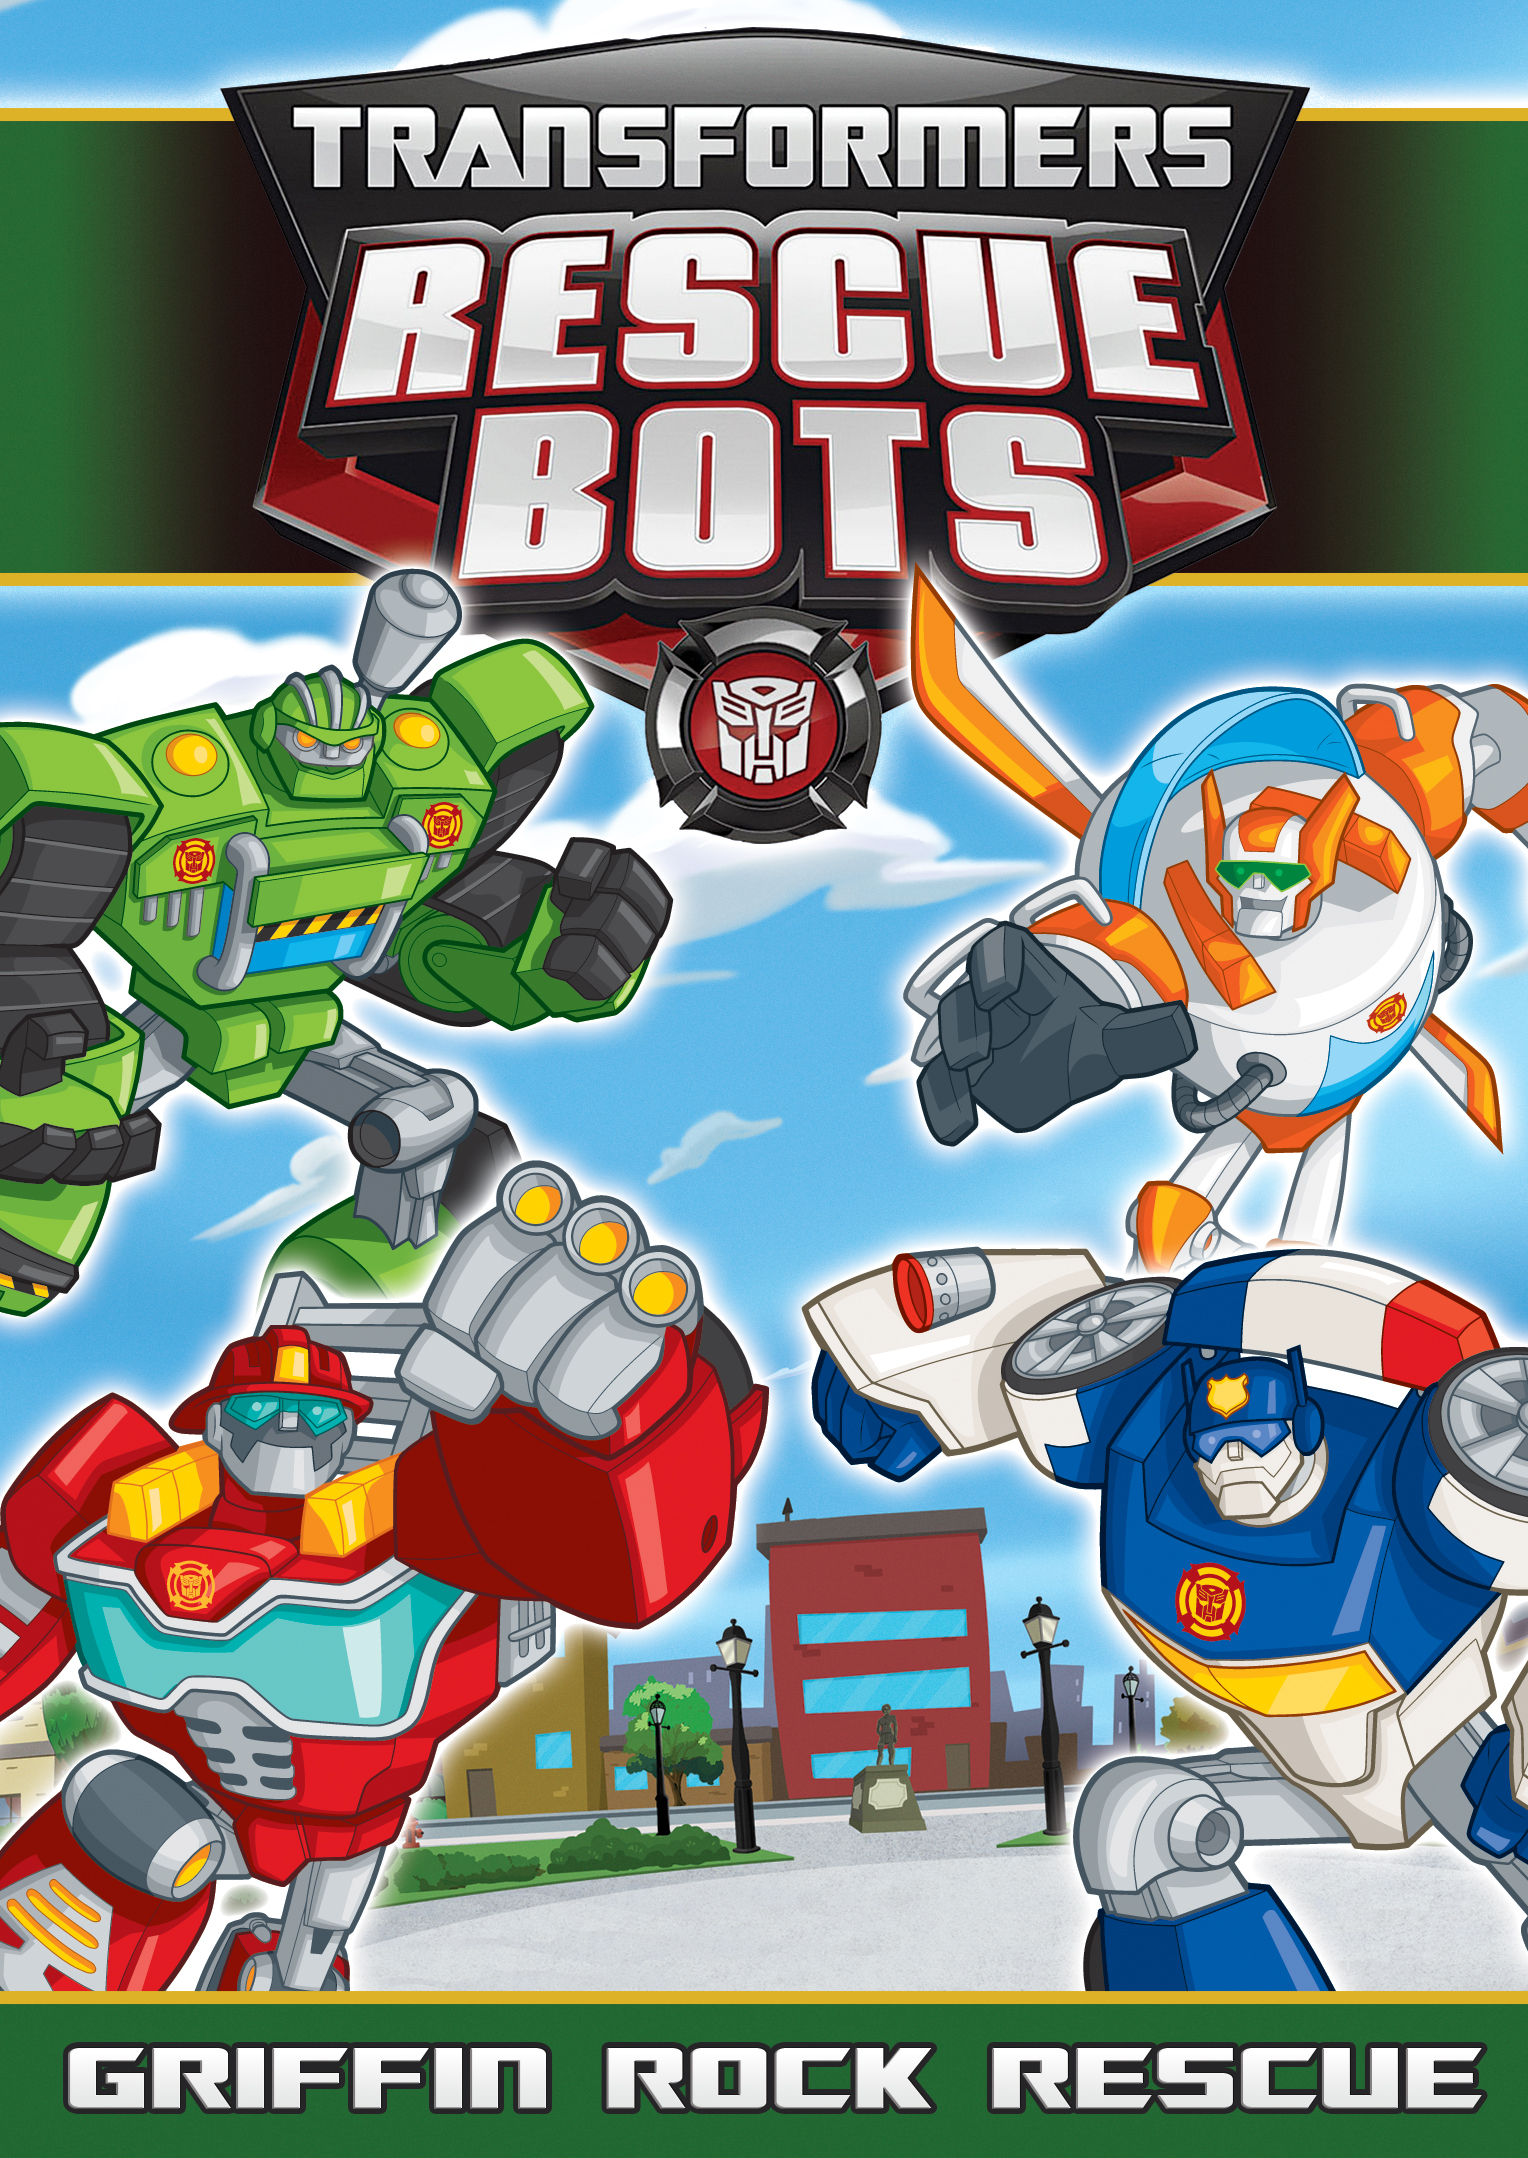 Transformers Animated Wallpaper Transformers Rescue Bots Griffin Rock Rescue Shout